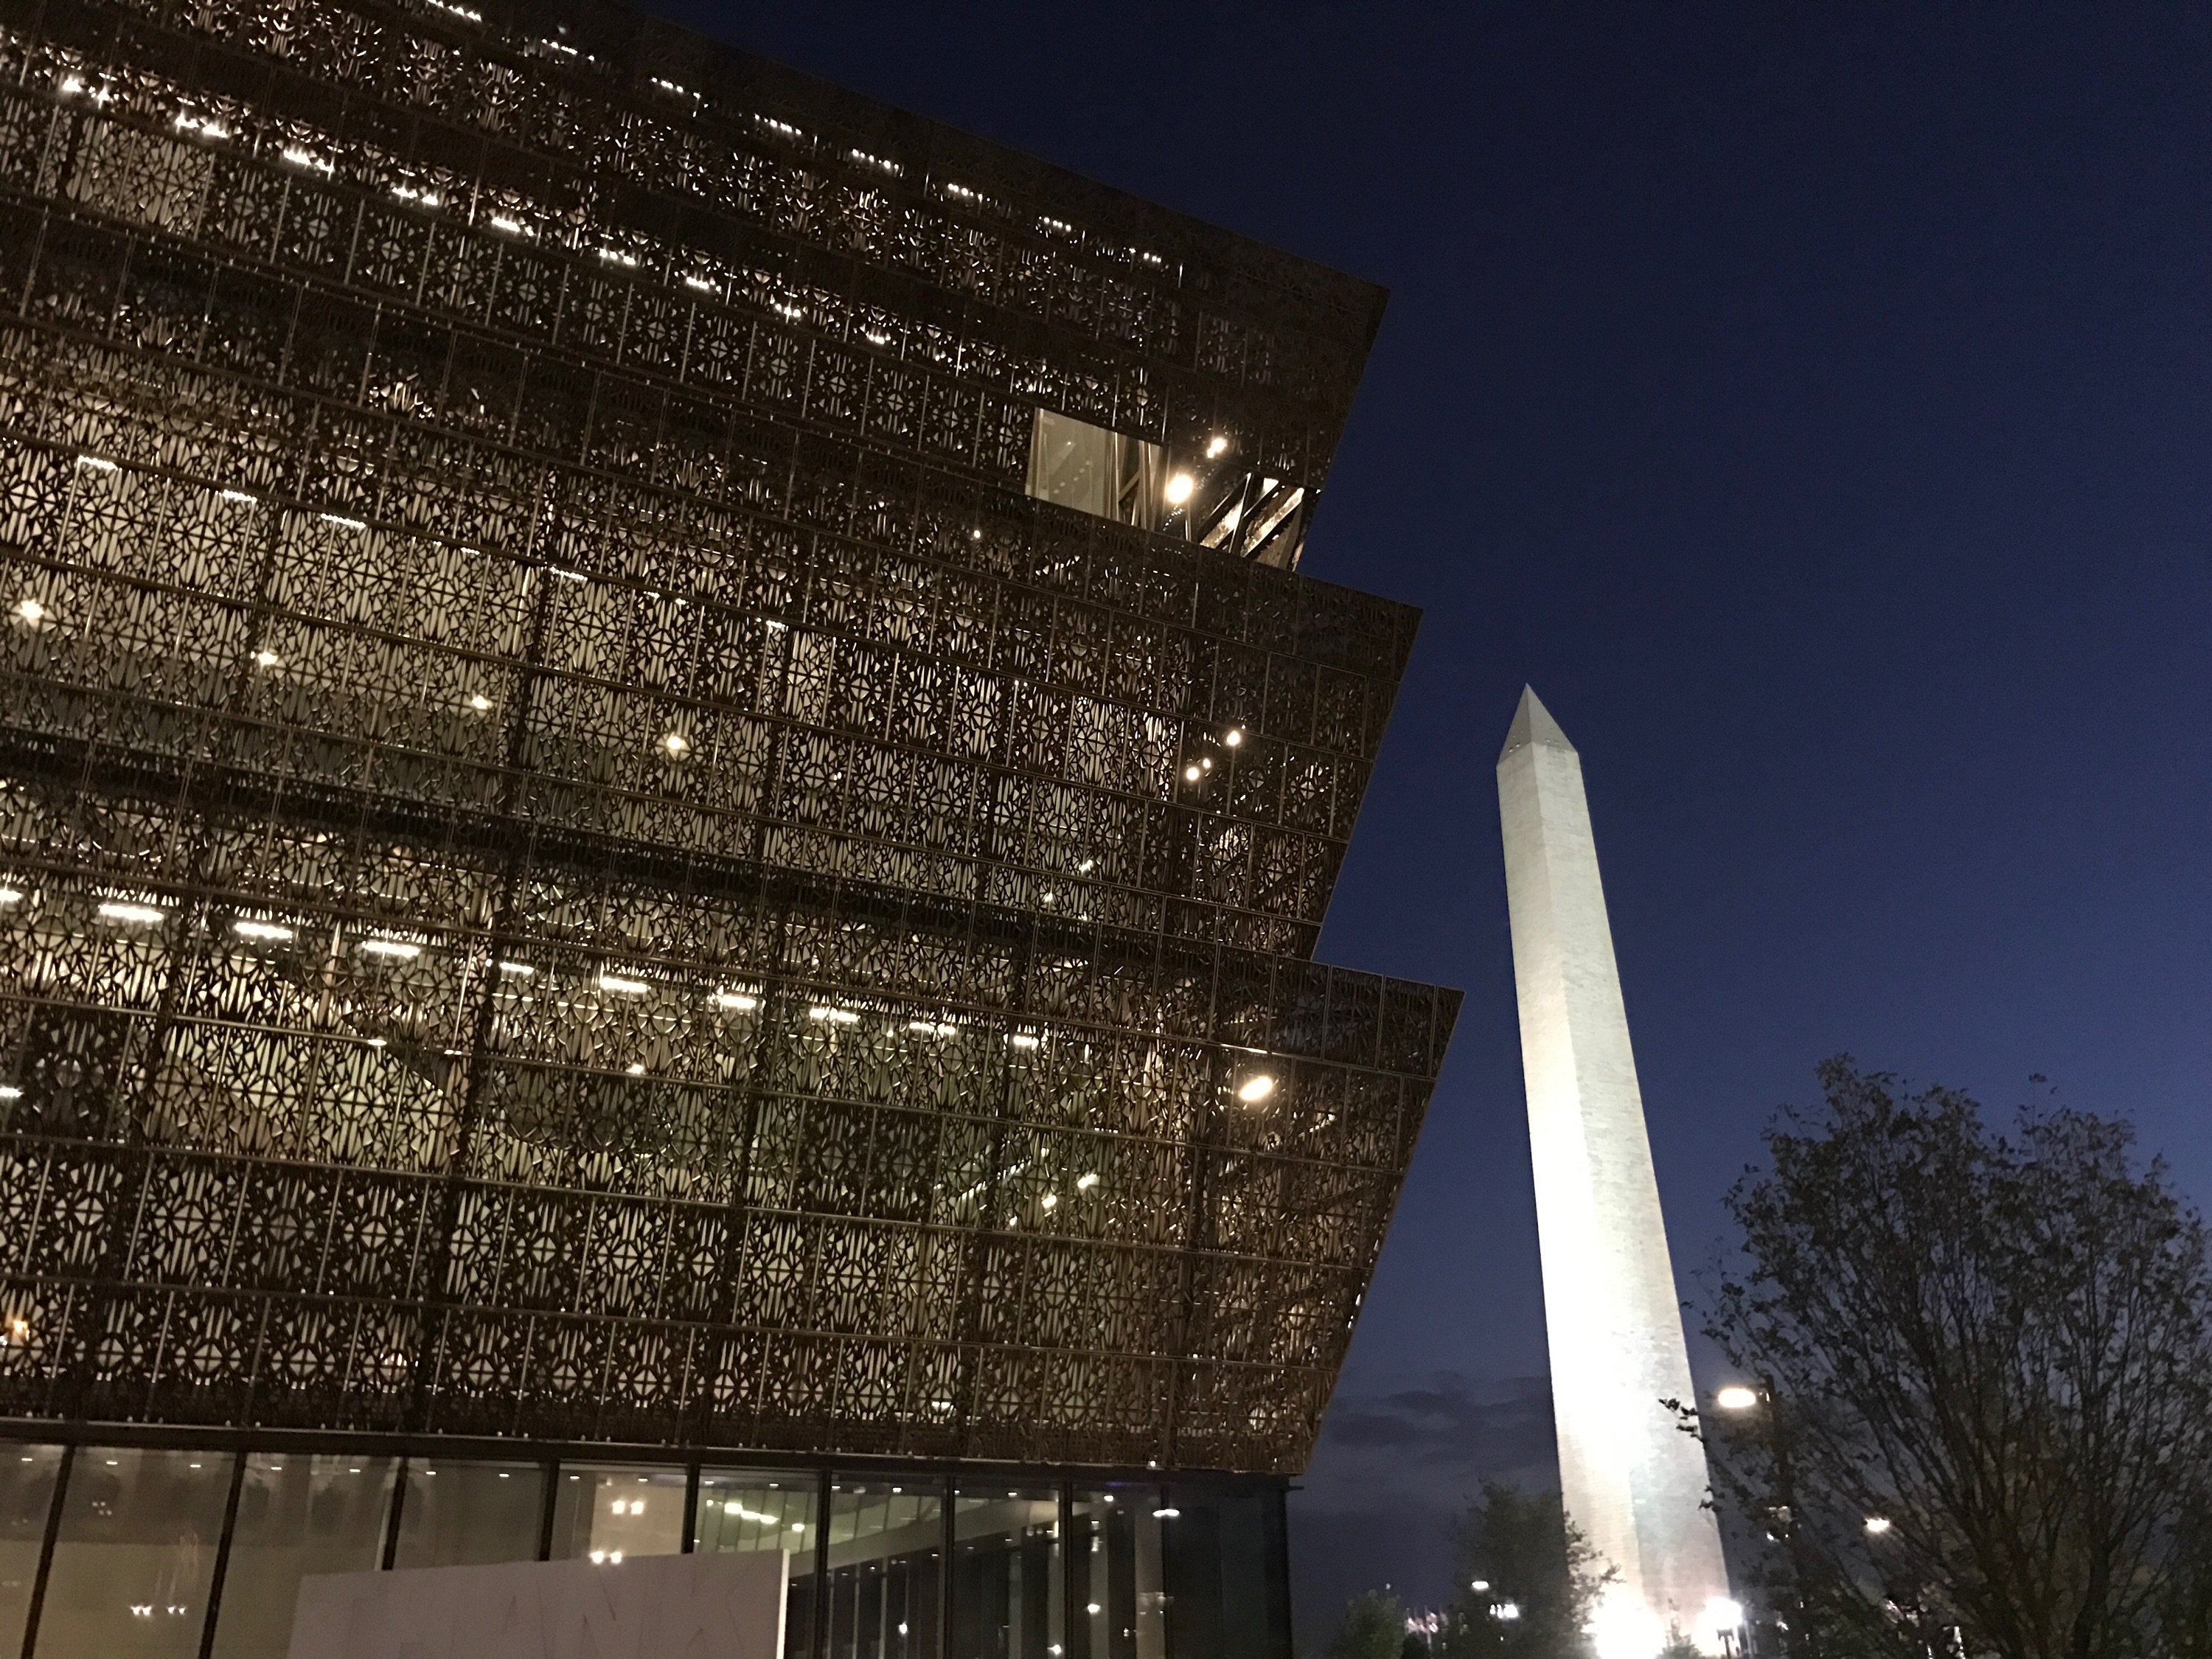 On the National Museum of African American History and Culture